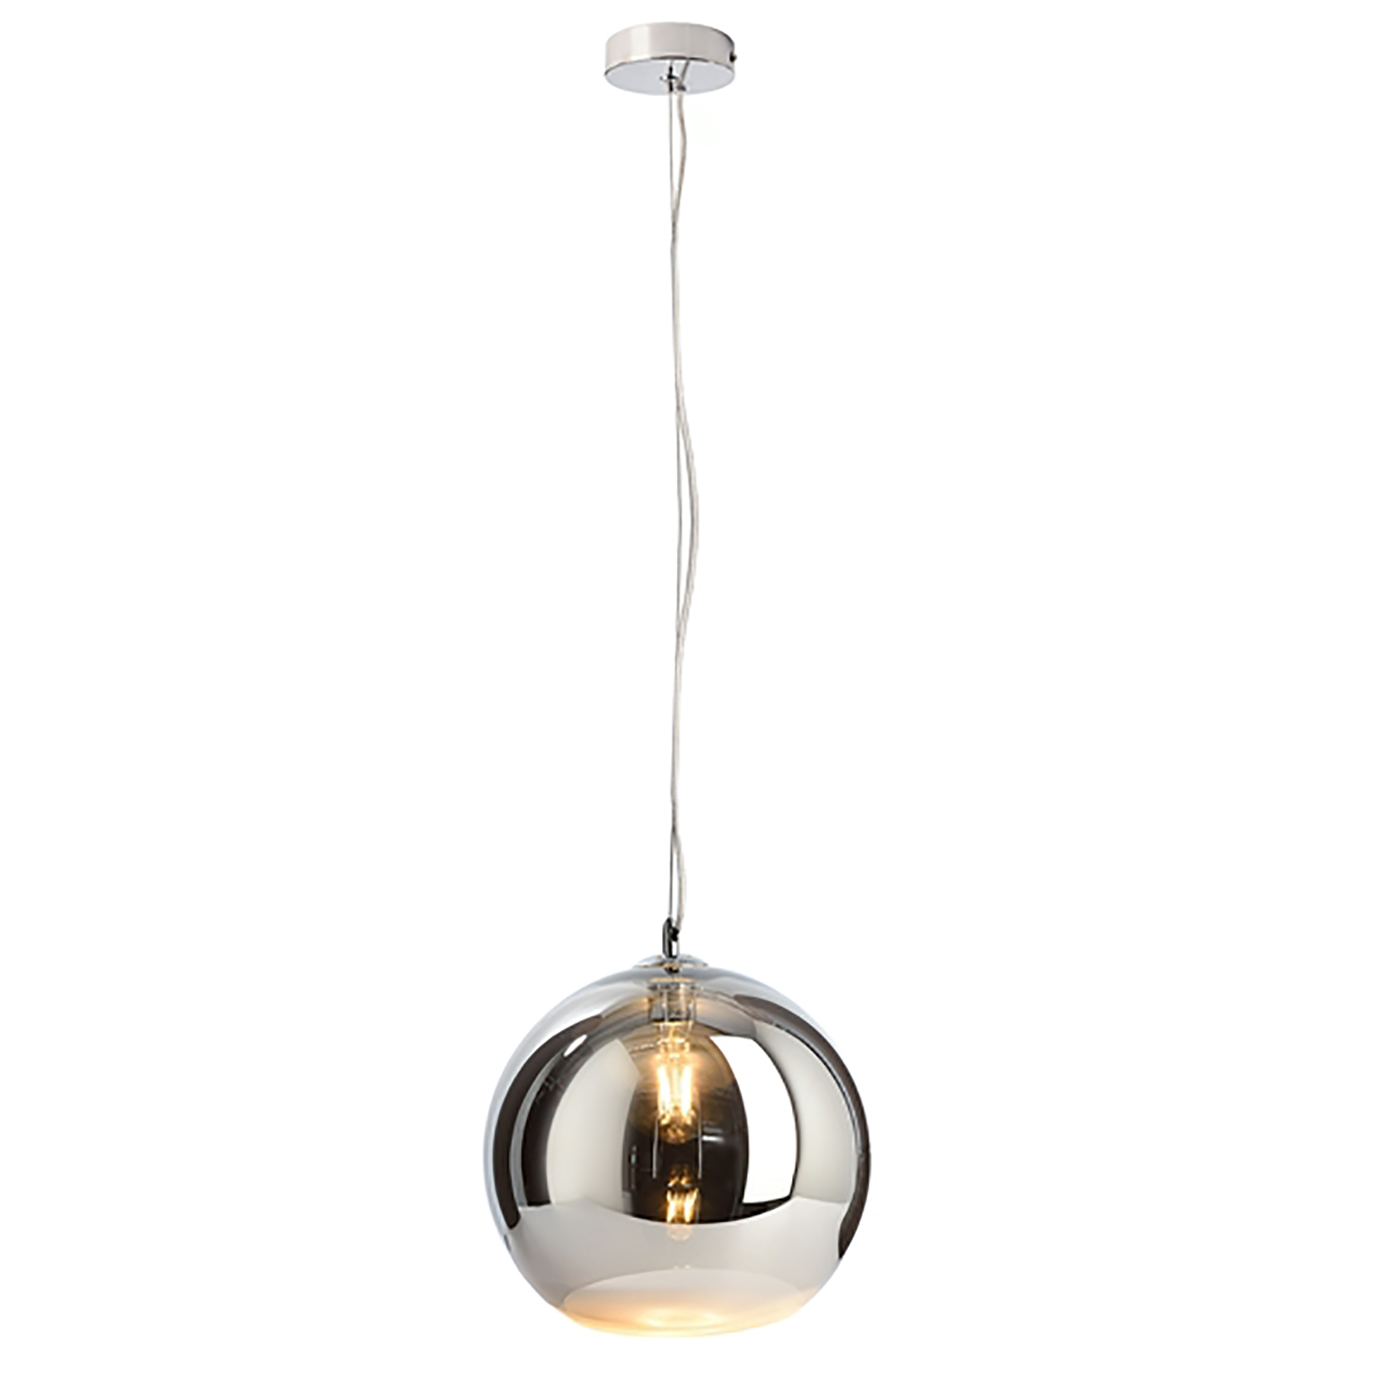 Pendete led sphere glass lamp, modern silver suspension globe ceiling E27